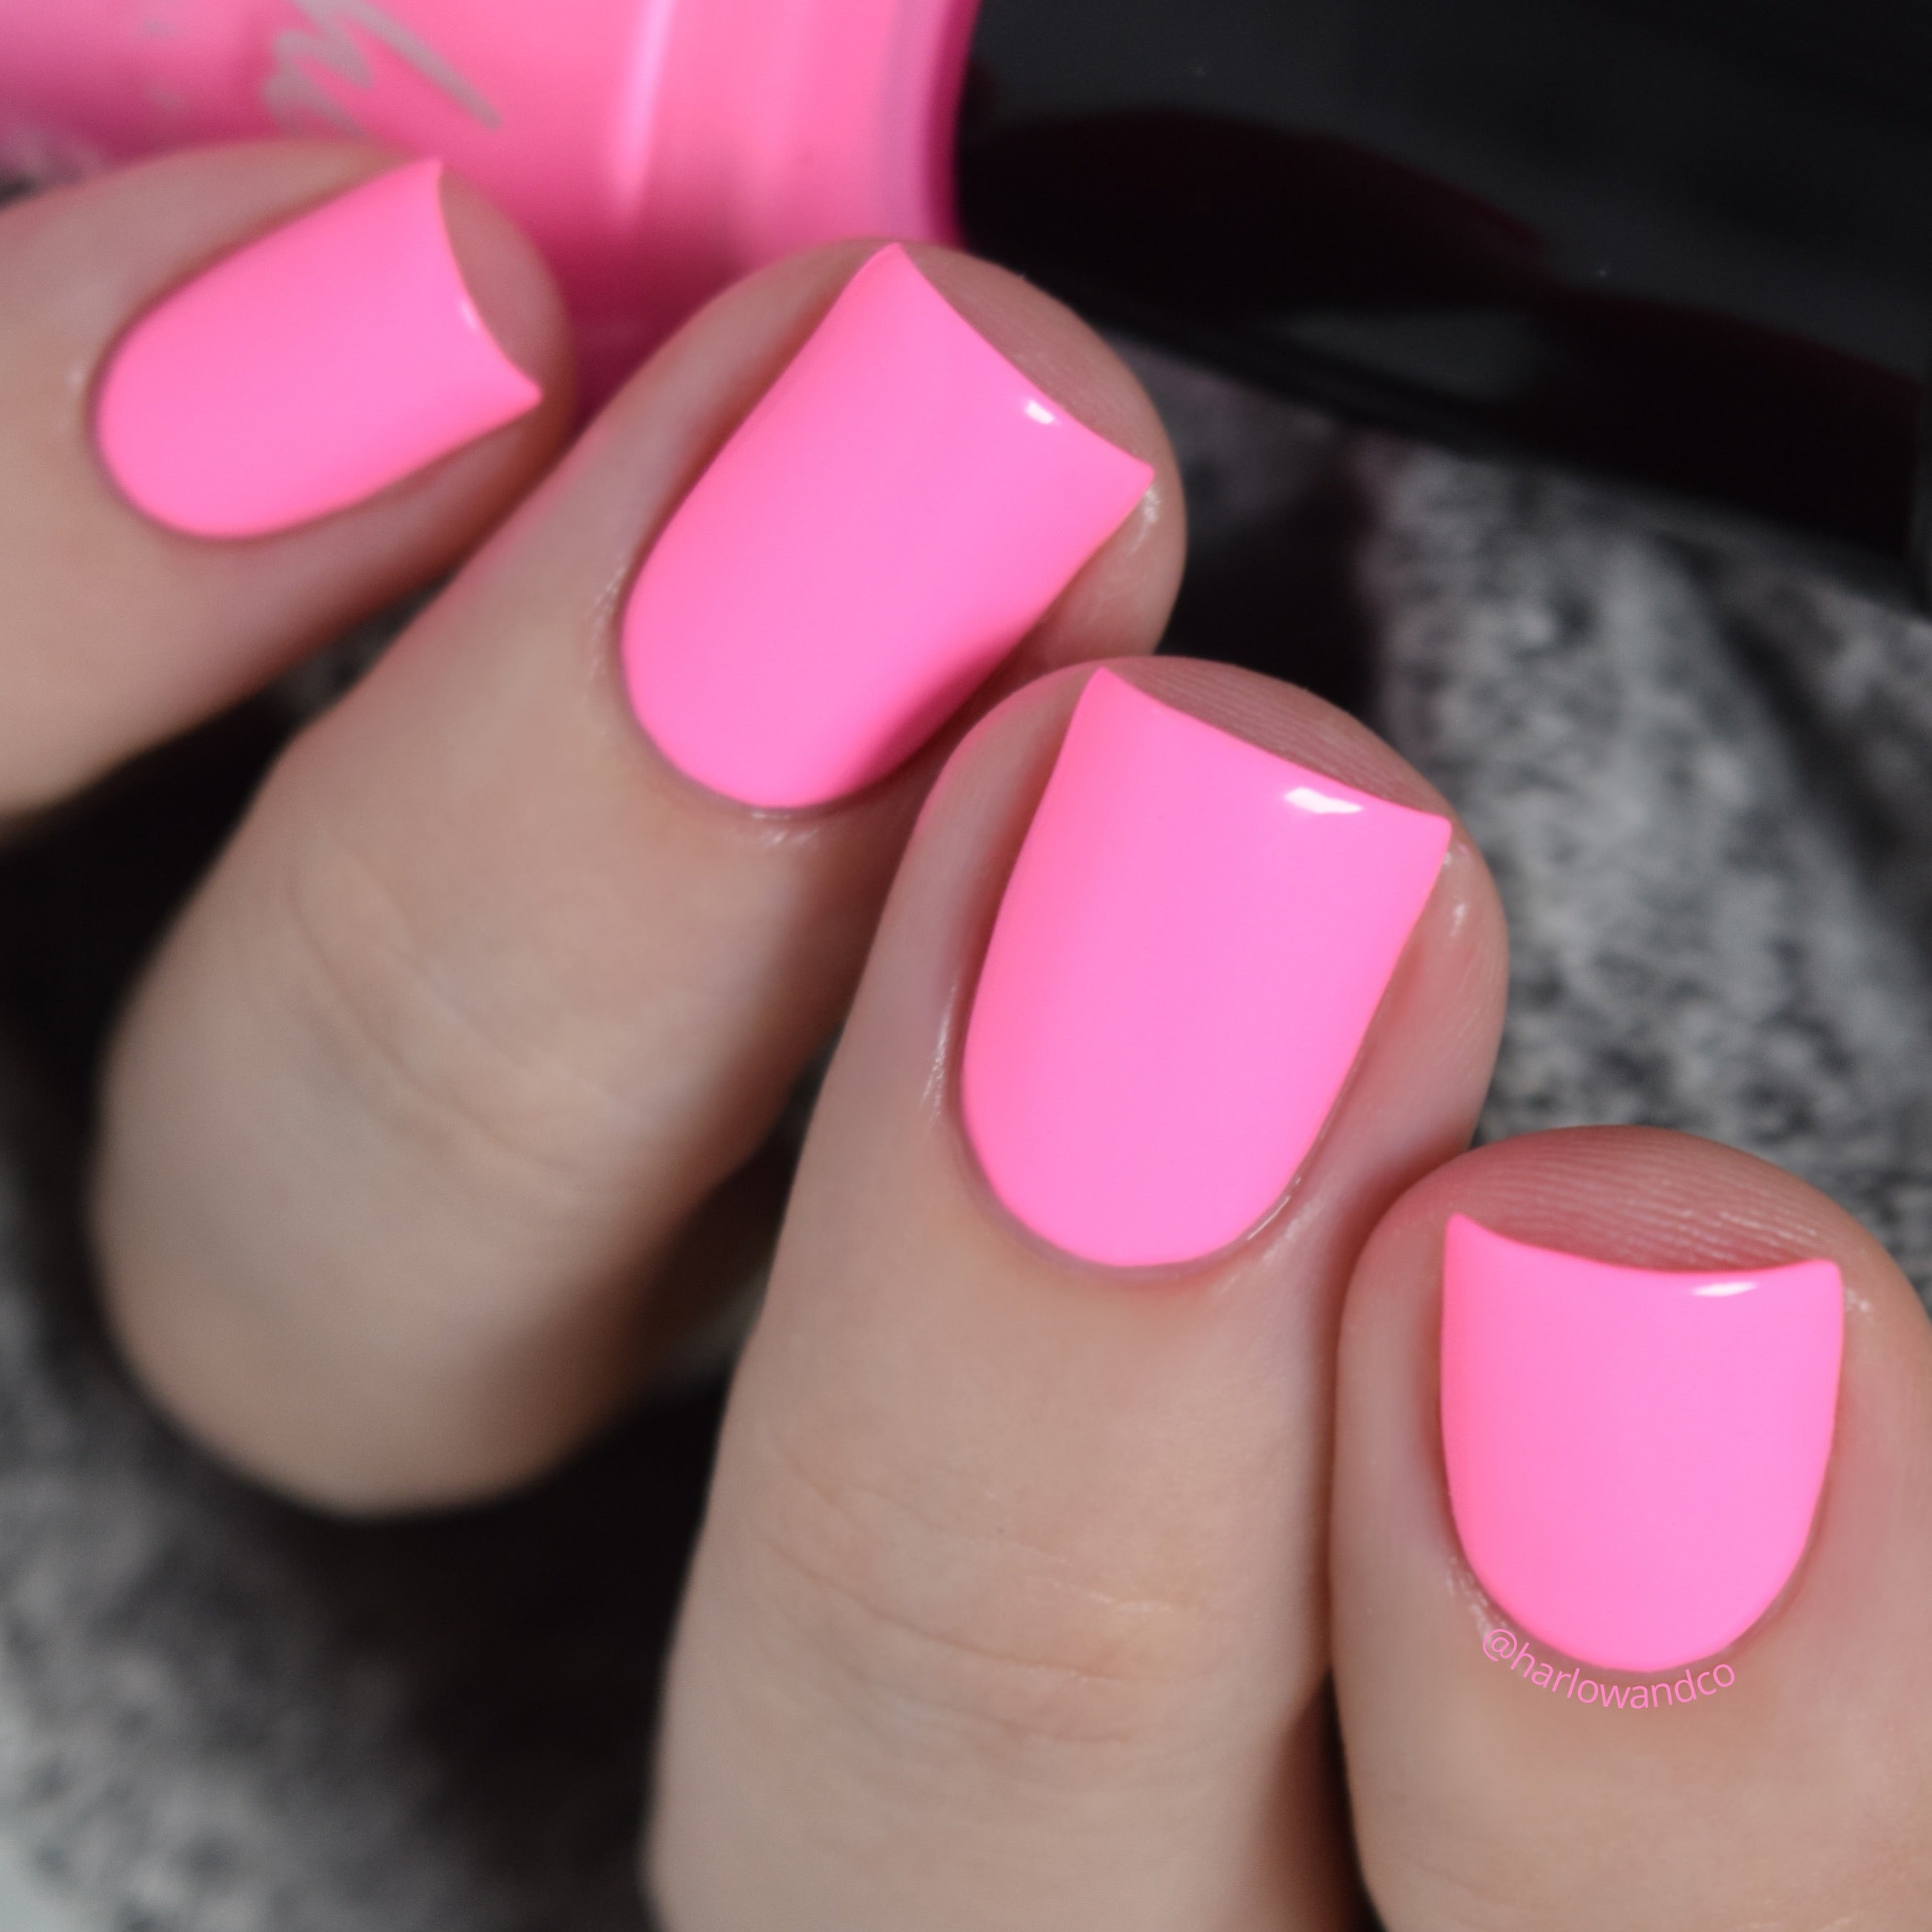 KBShimmer Pink or Swim neon pink creme nail polish Seas the Day Collection